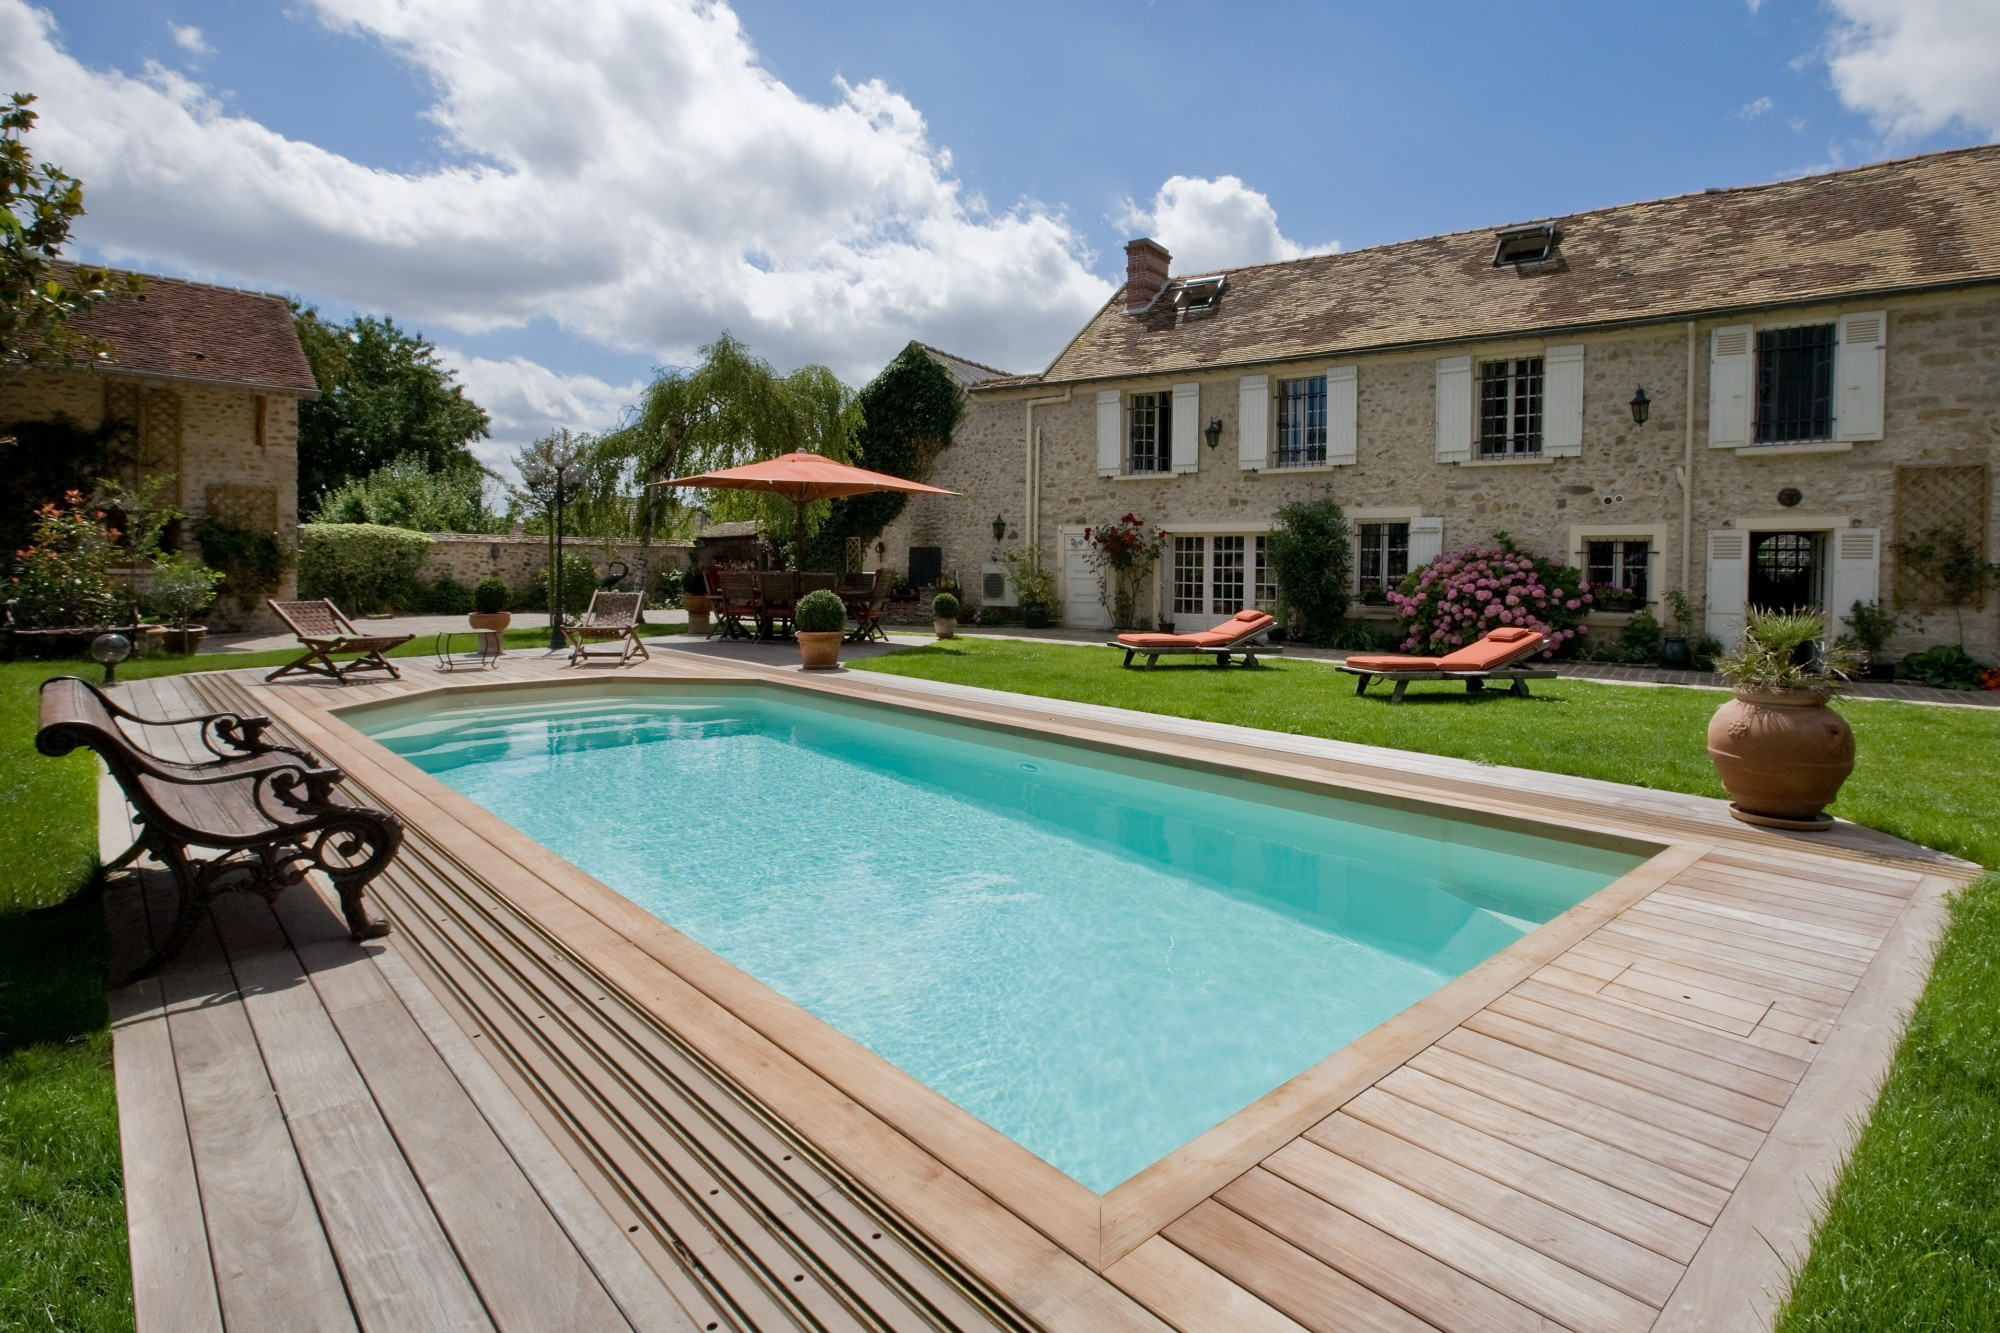 Piscine guide choix de solution co t et devis en ligne for Construction piscine prix